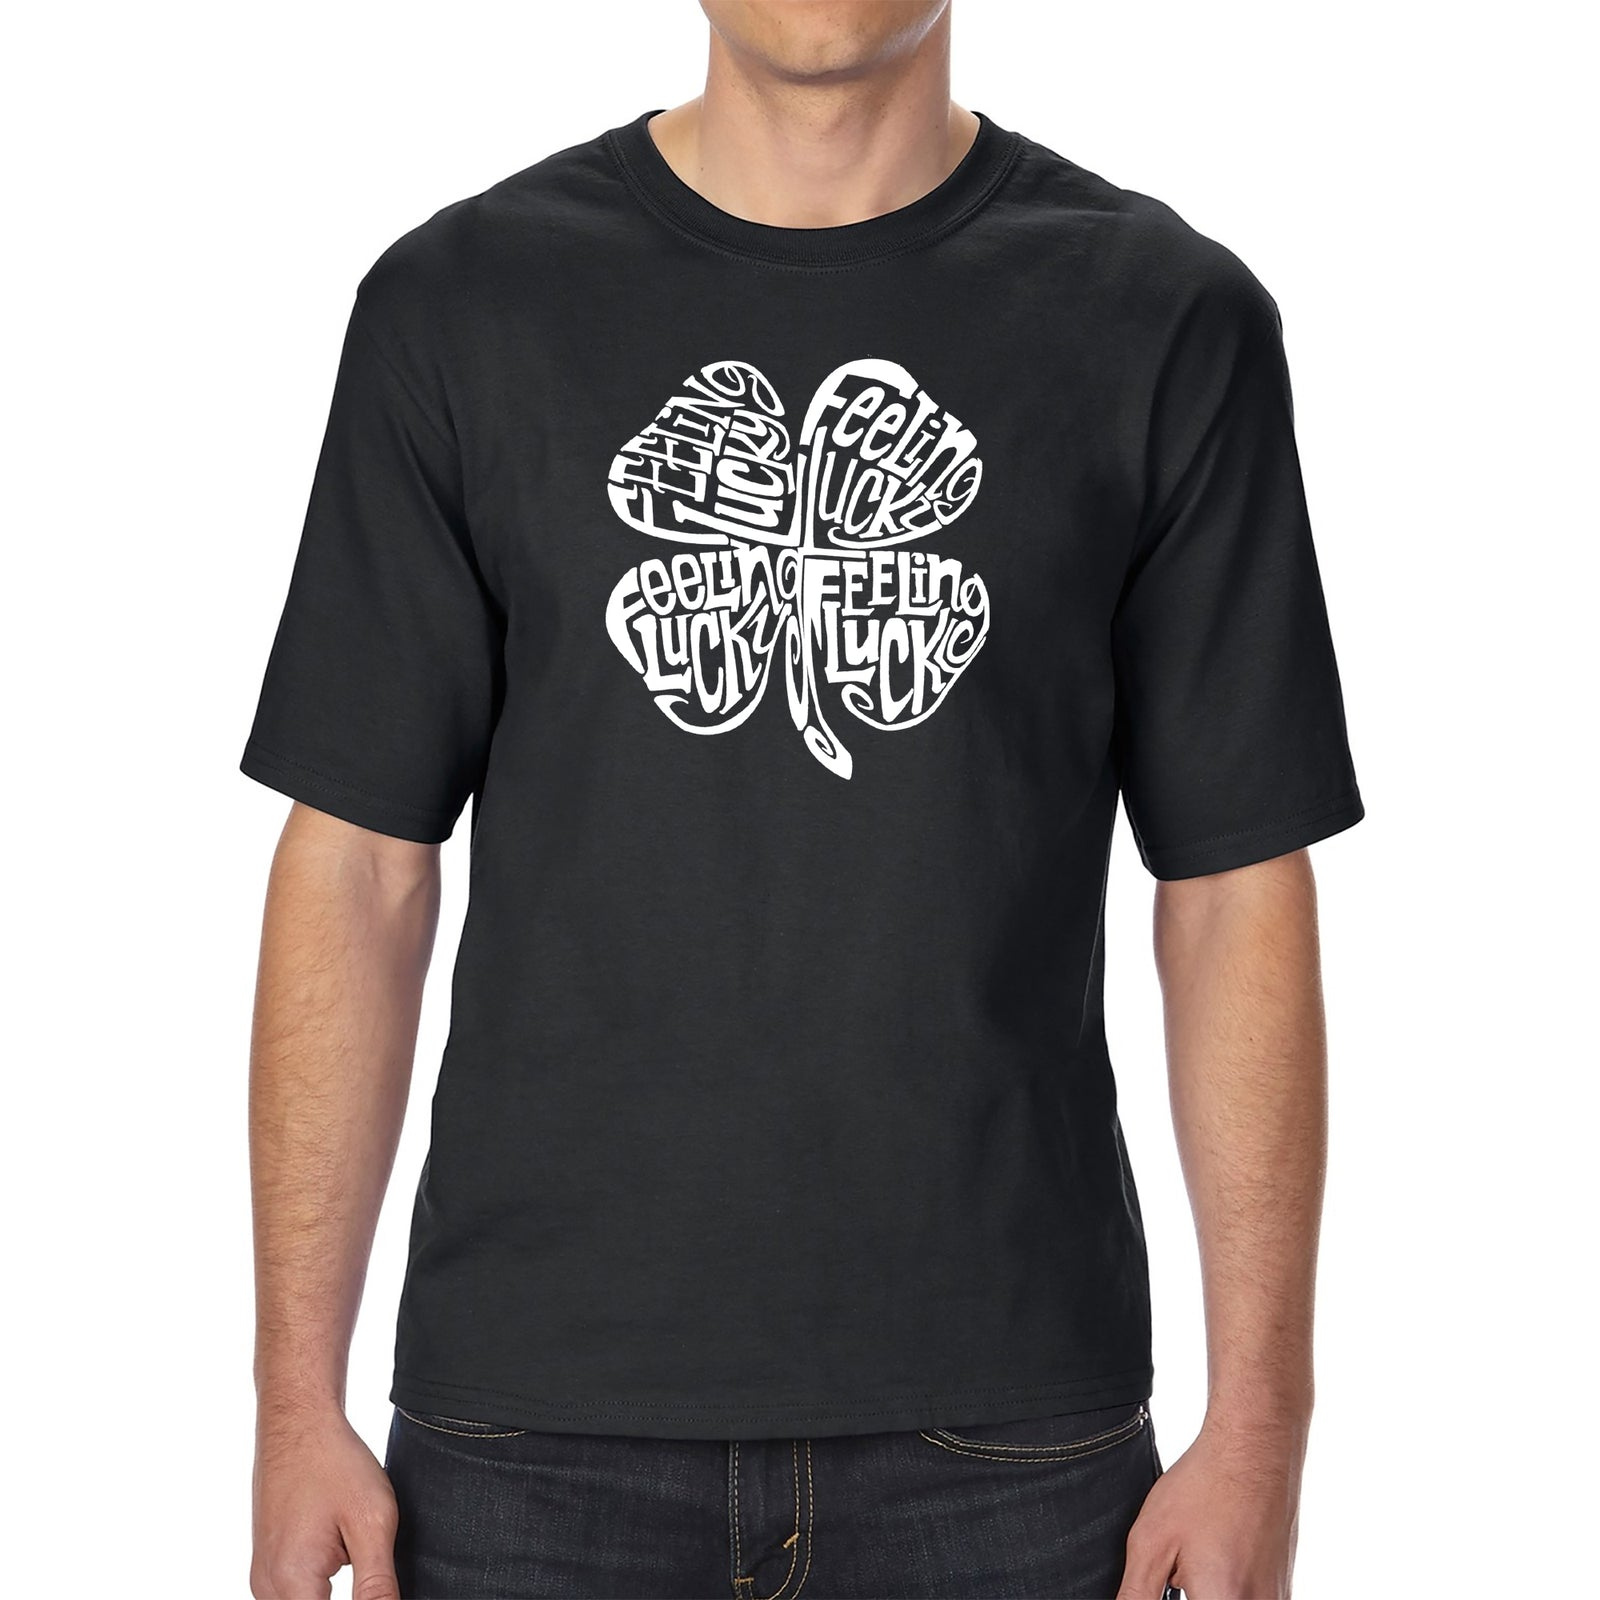 Men's Tall and Long Word Art T-shirt - Feeling Lucky